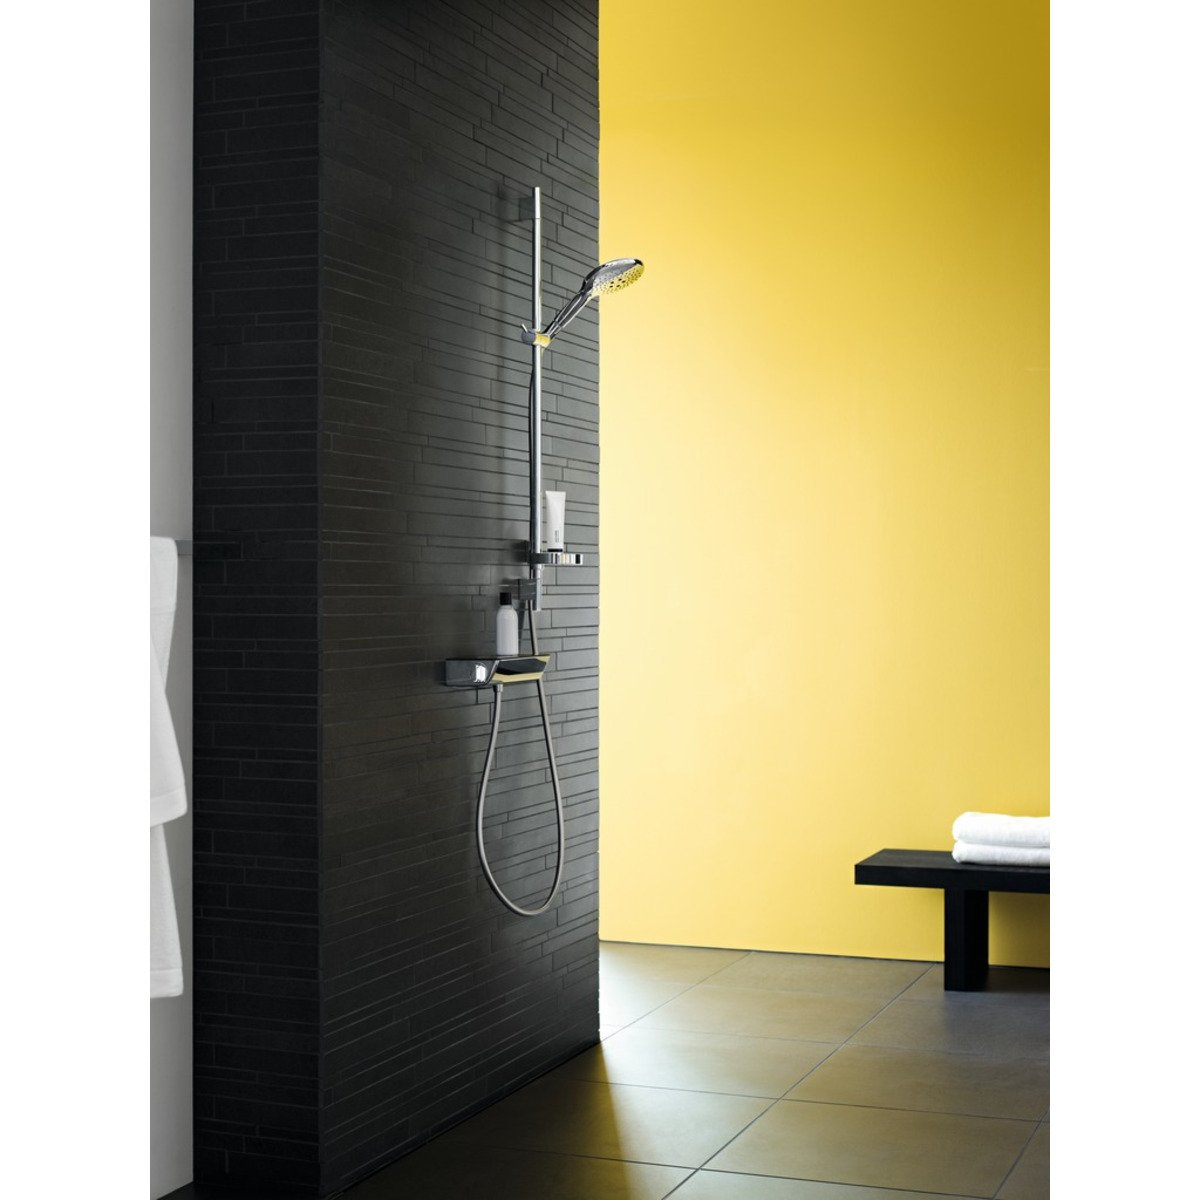 hansgrohe ecostat select mitigeur thermostatique douche chrom 13161000. Black Bedroom Furniture Sets. Home Design Ideas